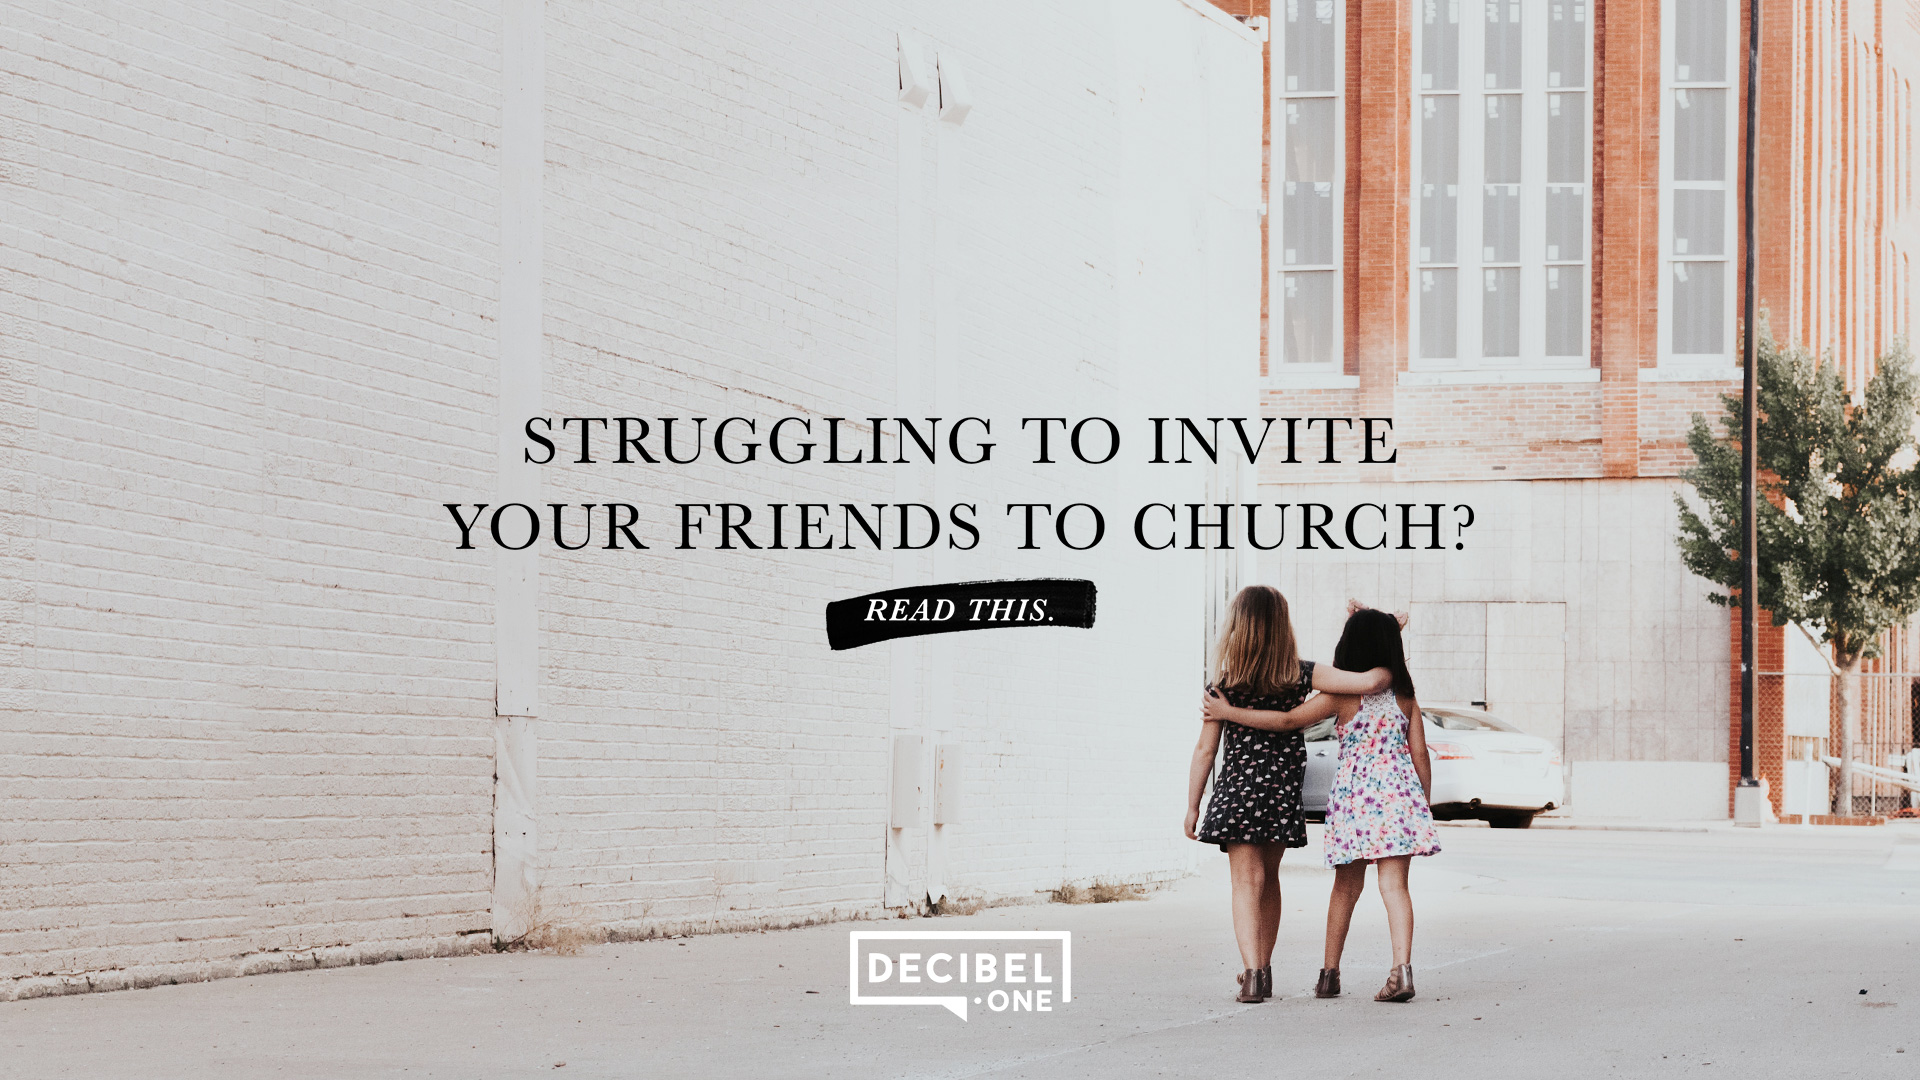 Struggling to invite your friends to church? Read this.